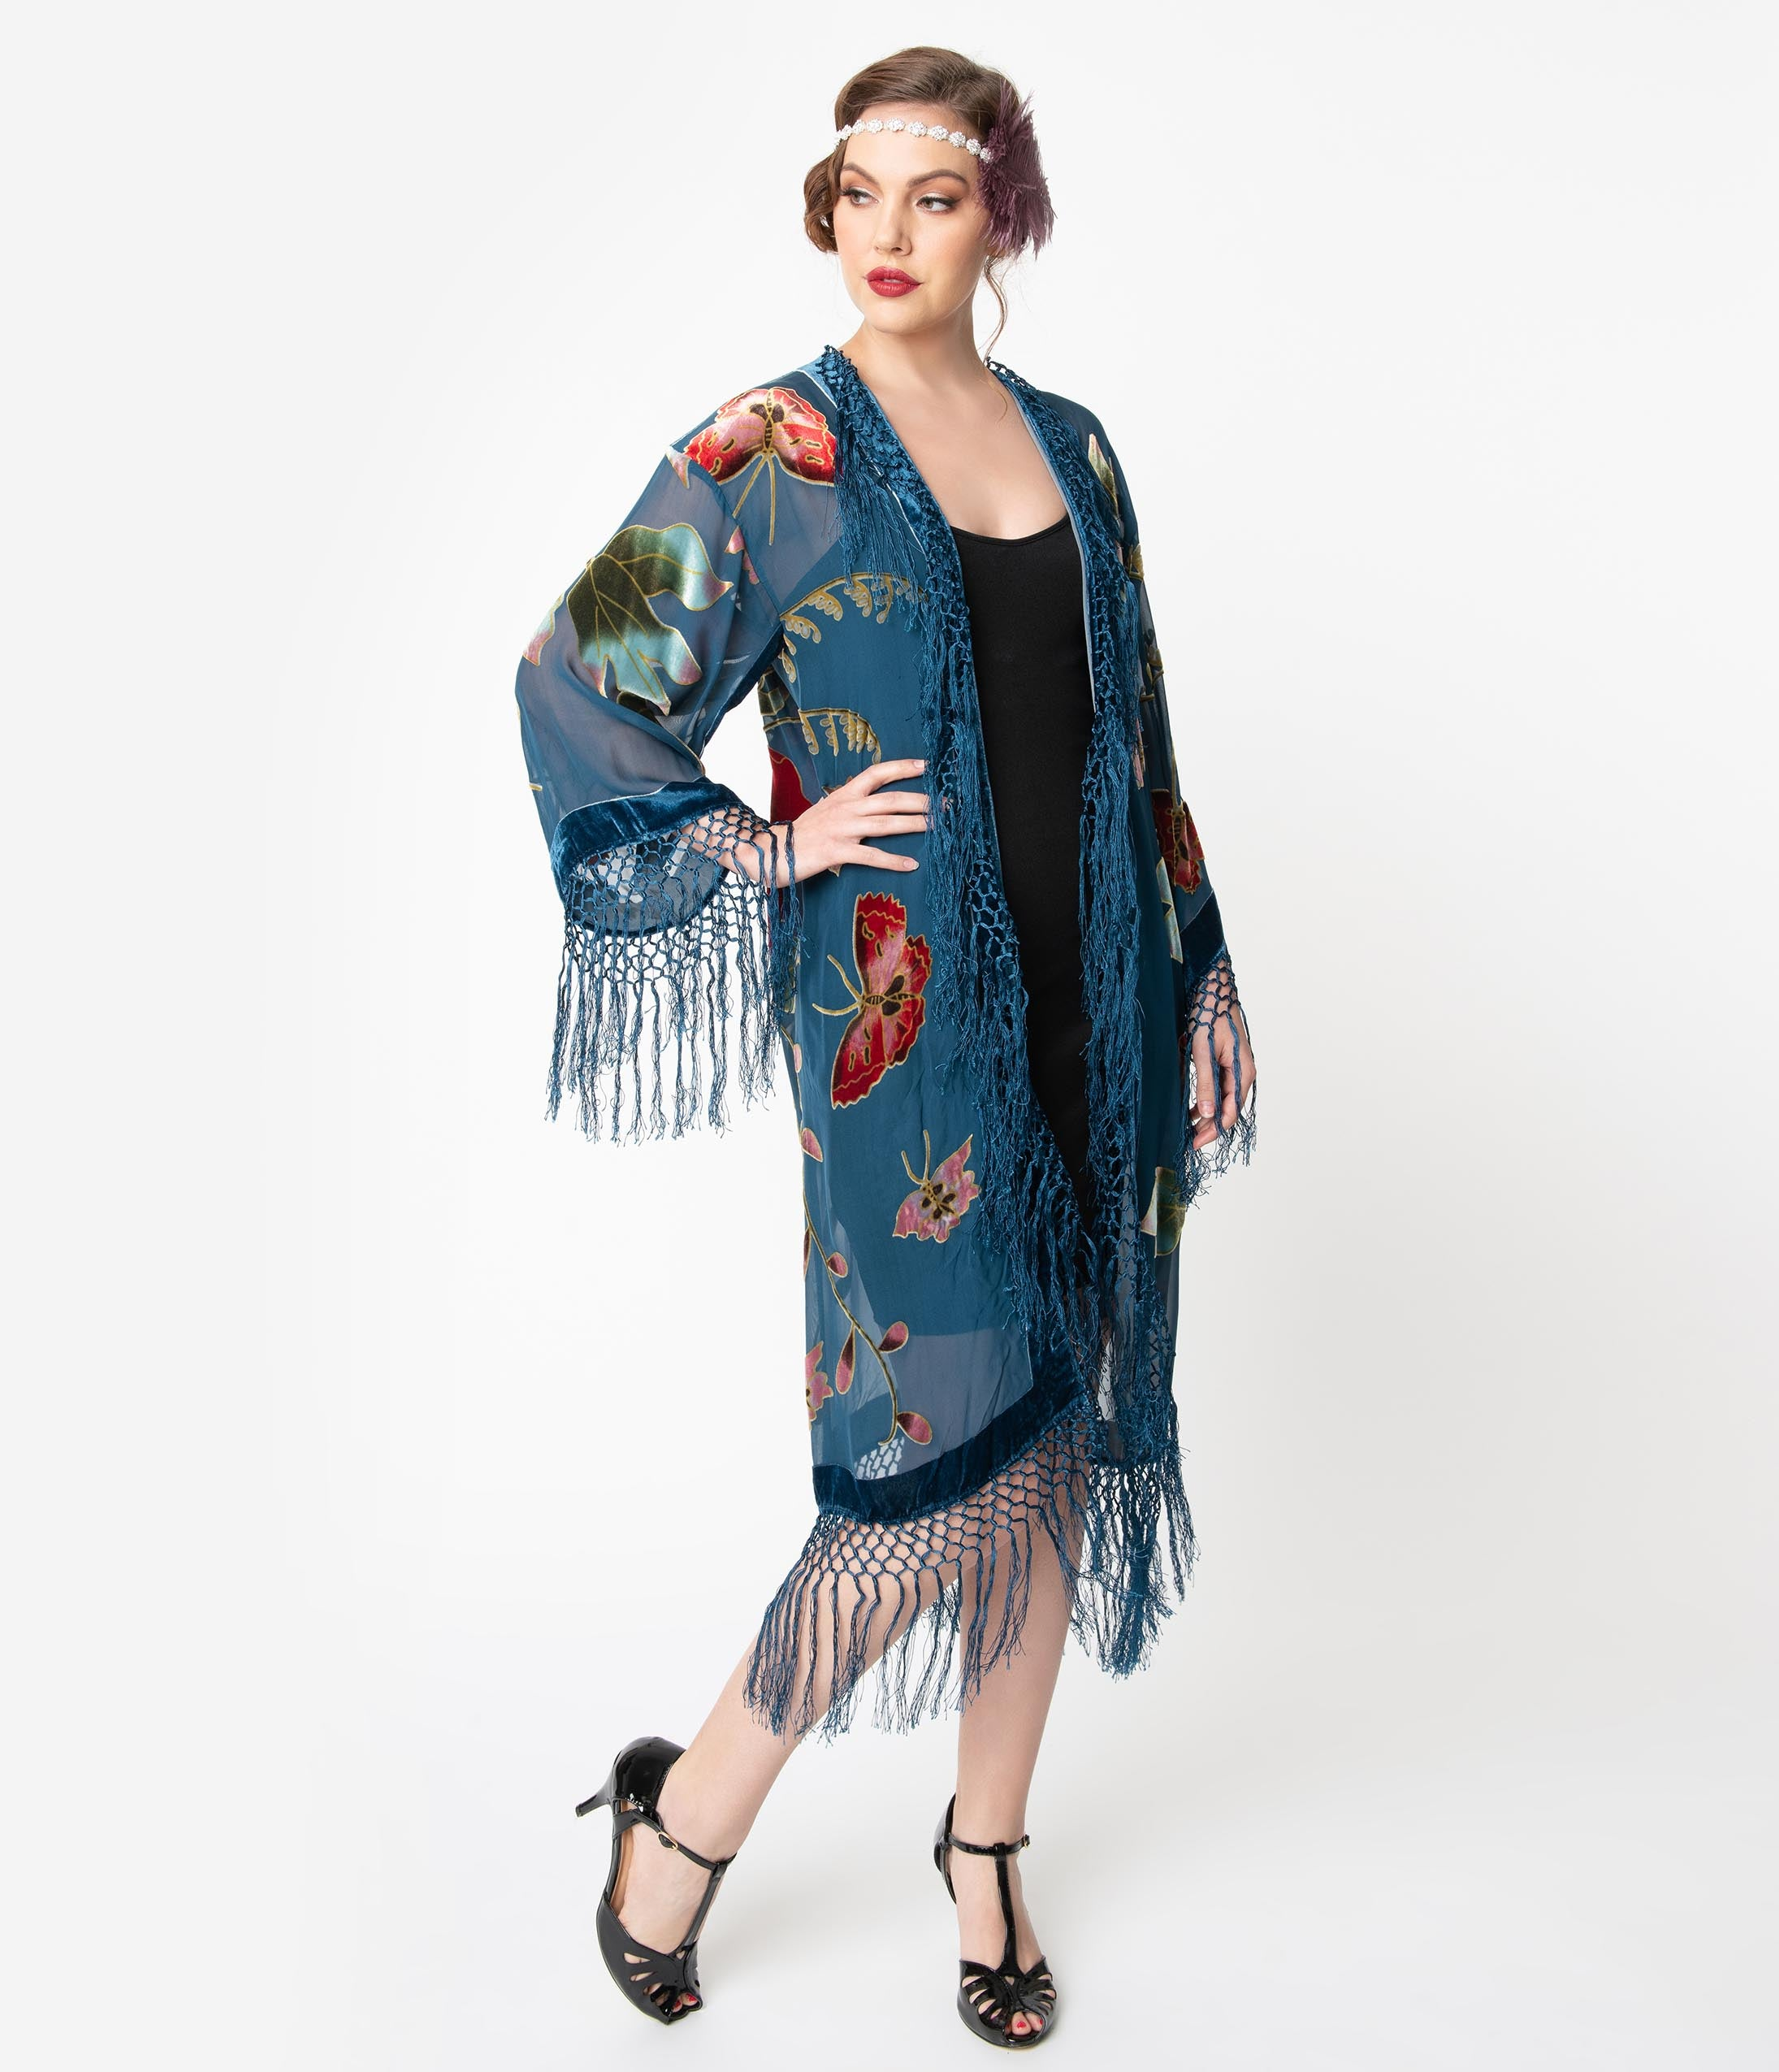 Vintage Coats & Jackets | Retro Coats and Jackets Vintage Style Teal Blue Floral Devore Velvet Fringe Flapper Coat $194.00 AT vintagedancer.com